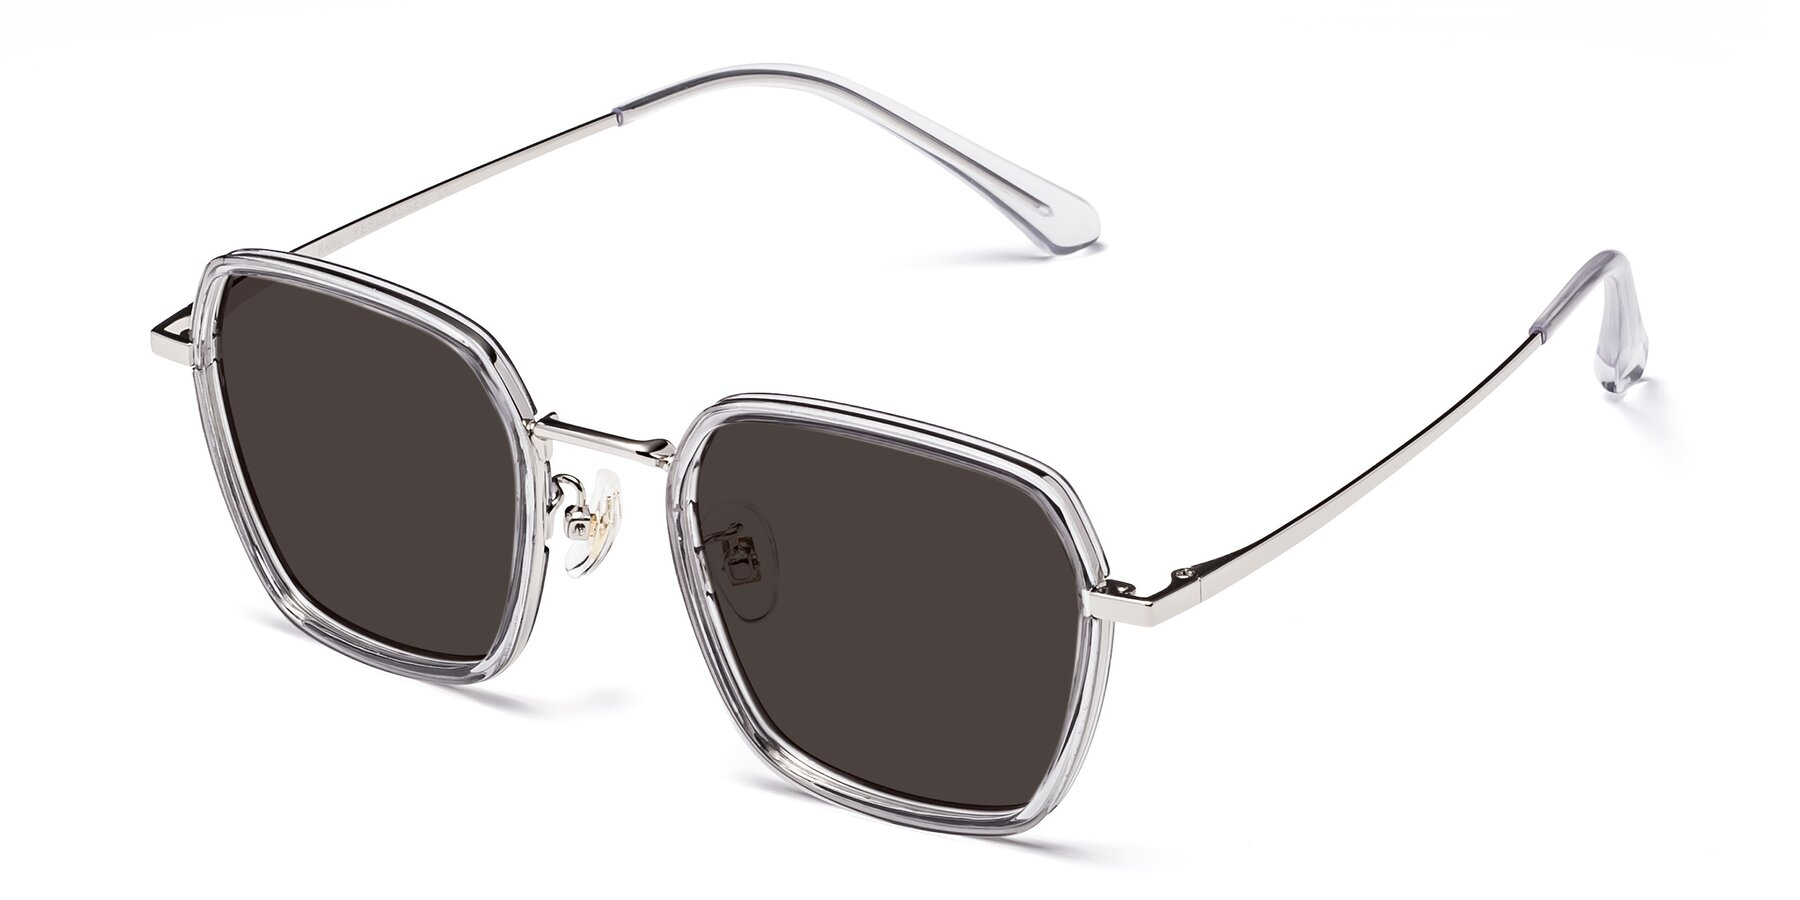 Angle of Kelly in Light Gray-Silver with Gray Tinted Lenses